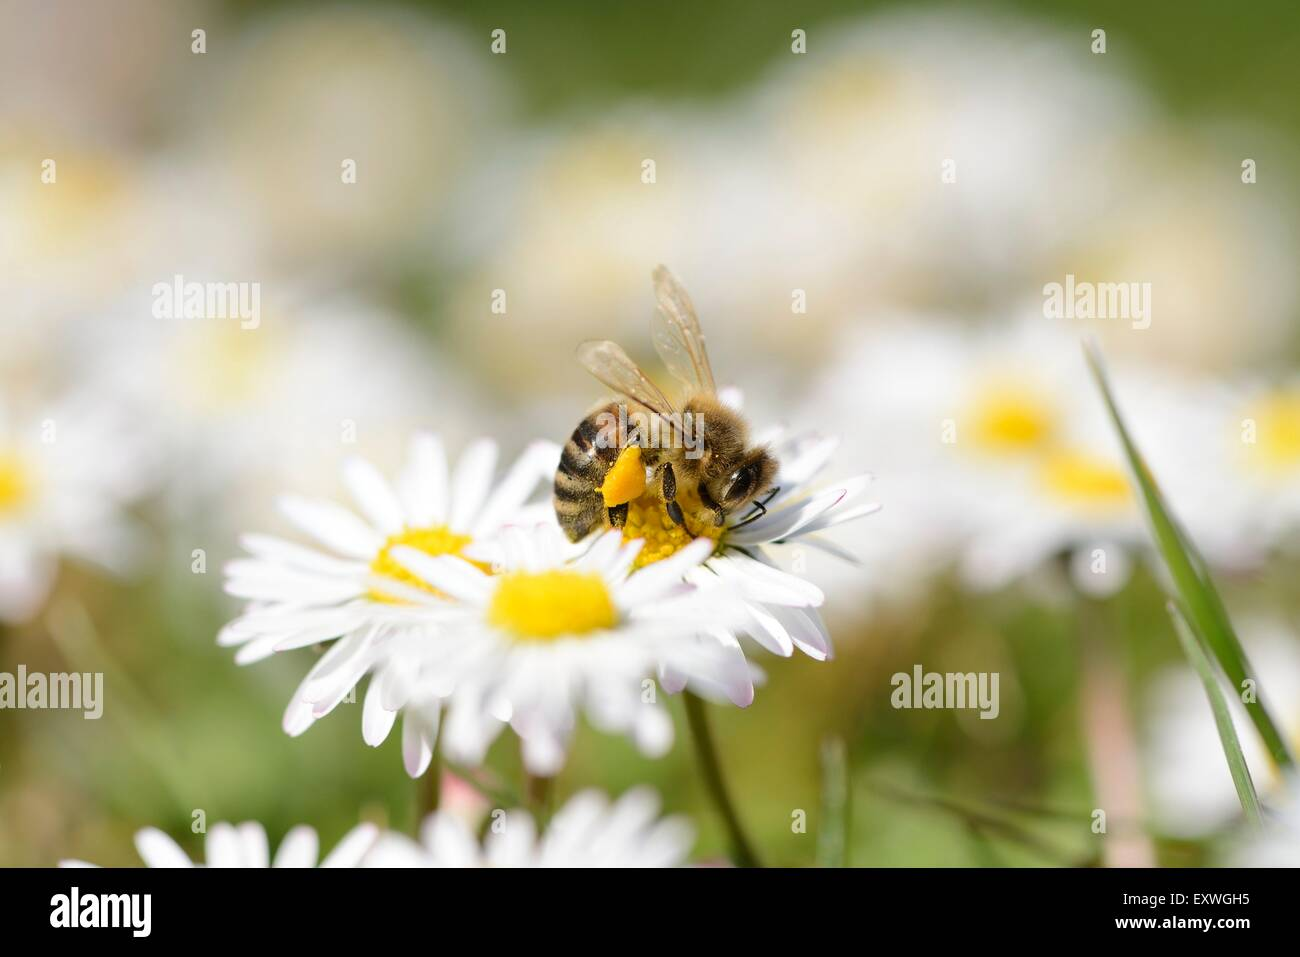 Close-up of a western honey bee on a common daisy - Stock Image